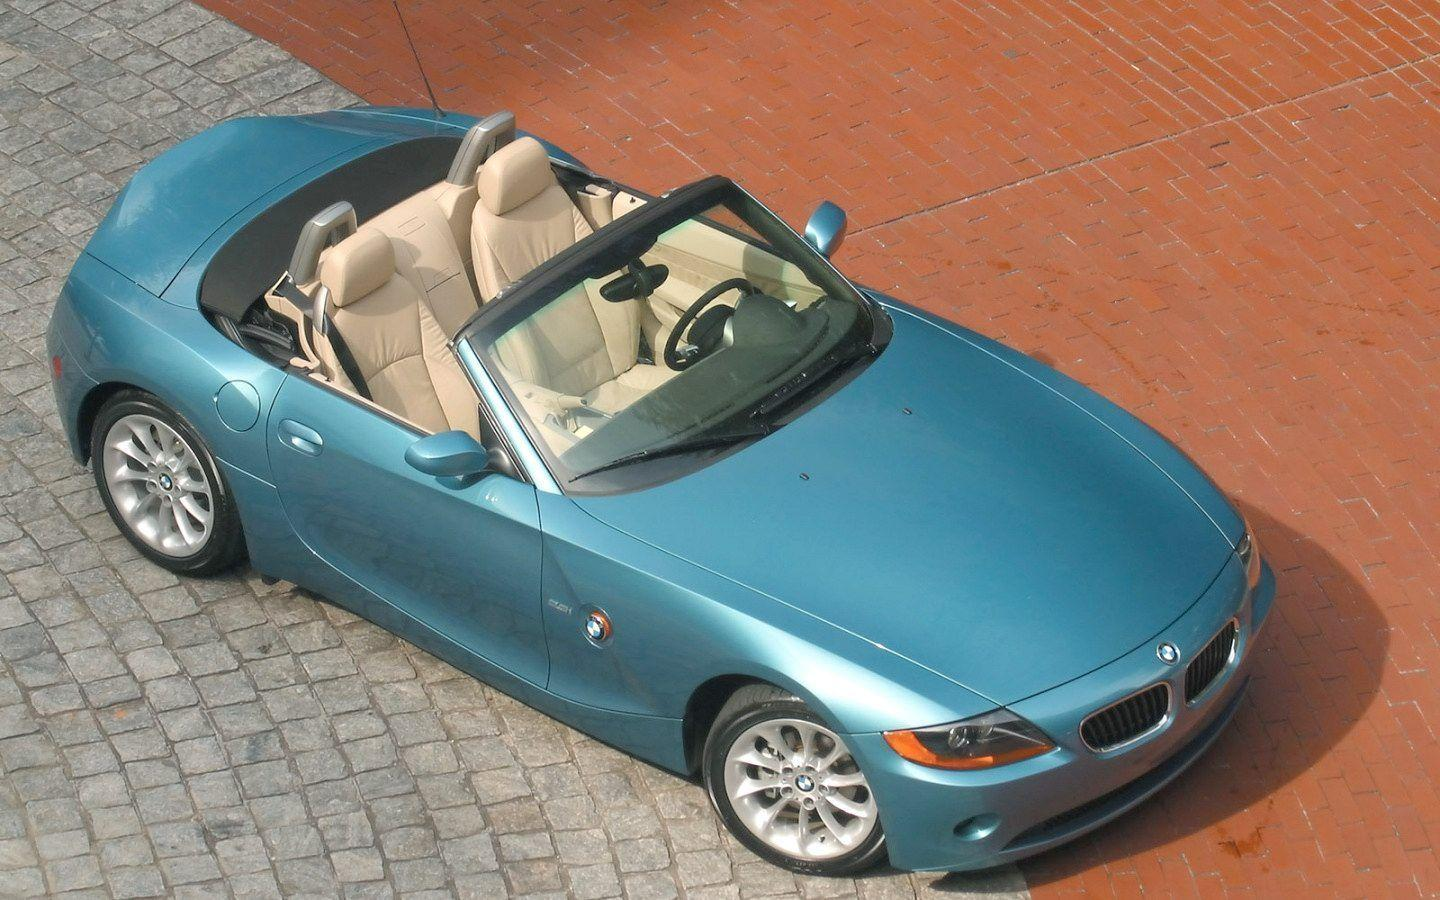 BMW Z4 Roadster Wallpaper 23 - 1440x900